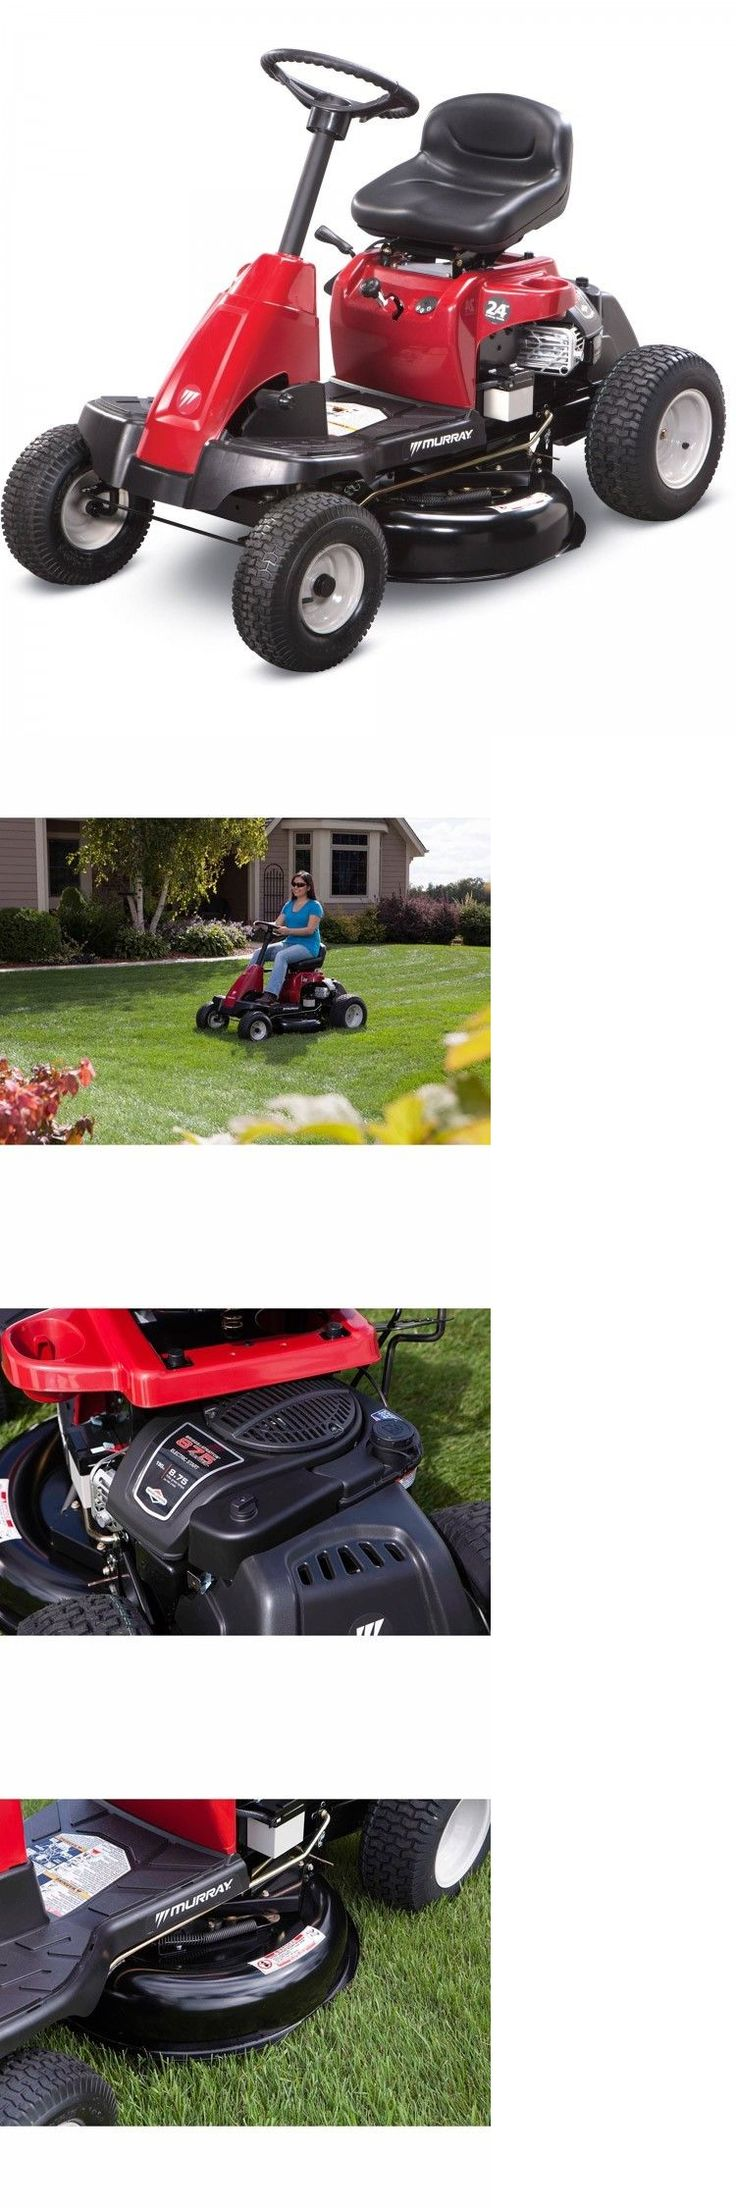 Riding mowers 177021 riding lawn mower grass trimmer mulching trimmers ride on cutter rear engine